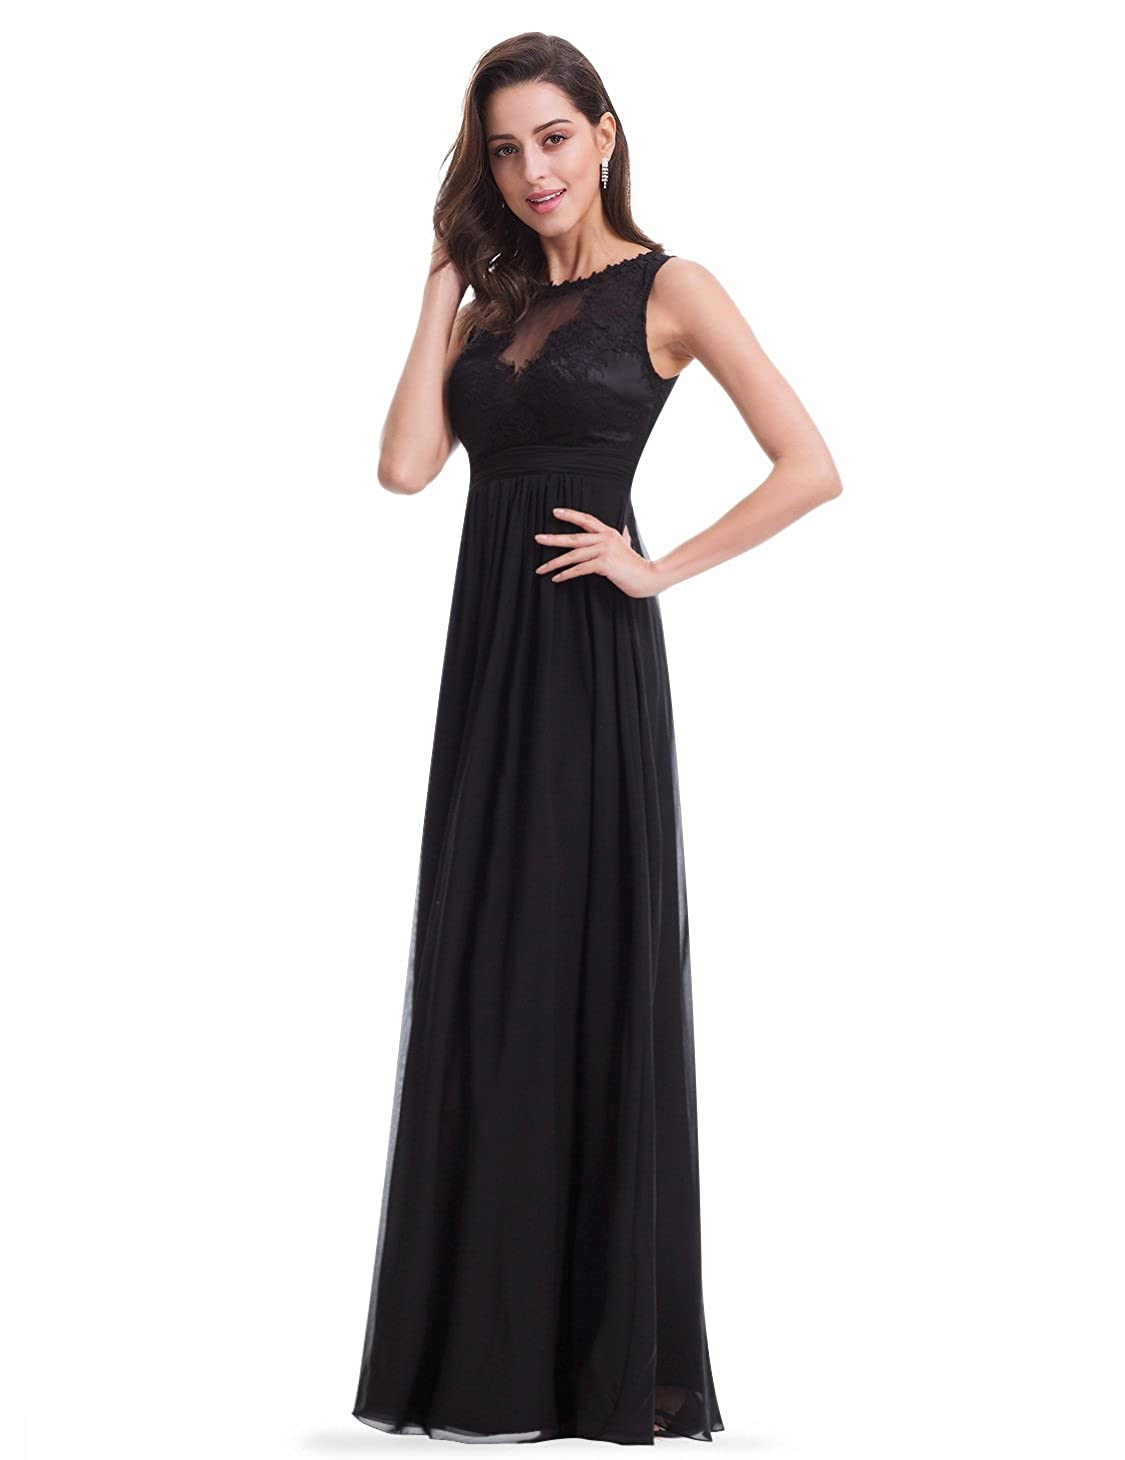 10ecf5a190 Ever-Pretty Women s Elegant Round Neck Long Evening Dress 08715 at Amazon  Women s Clothing store